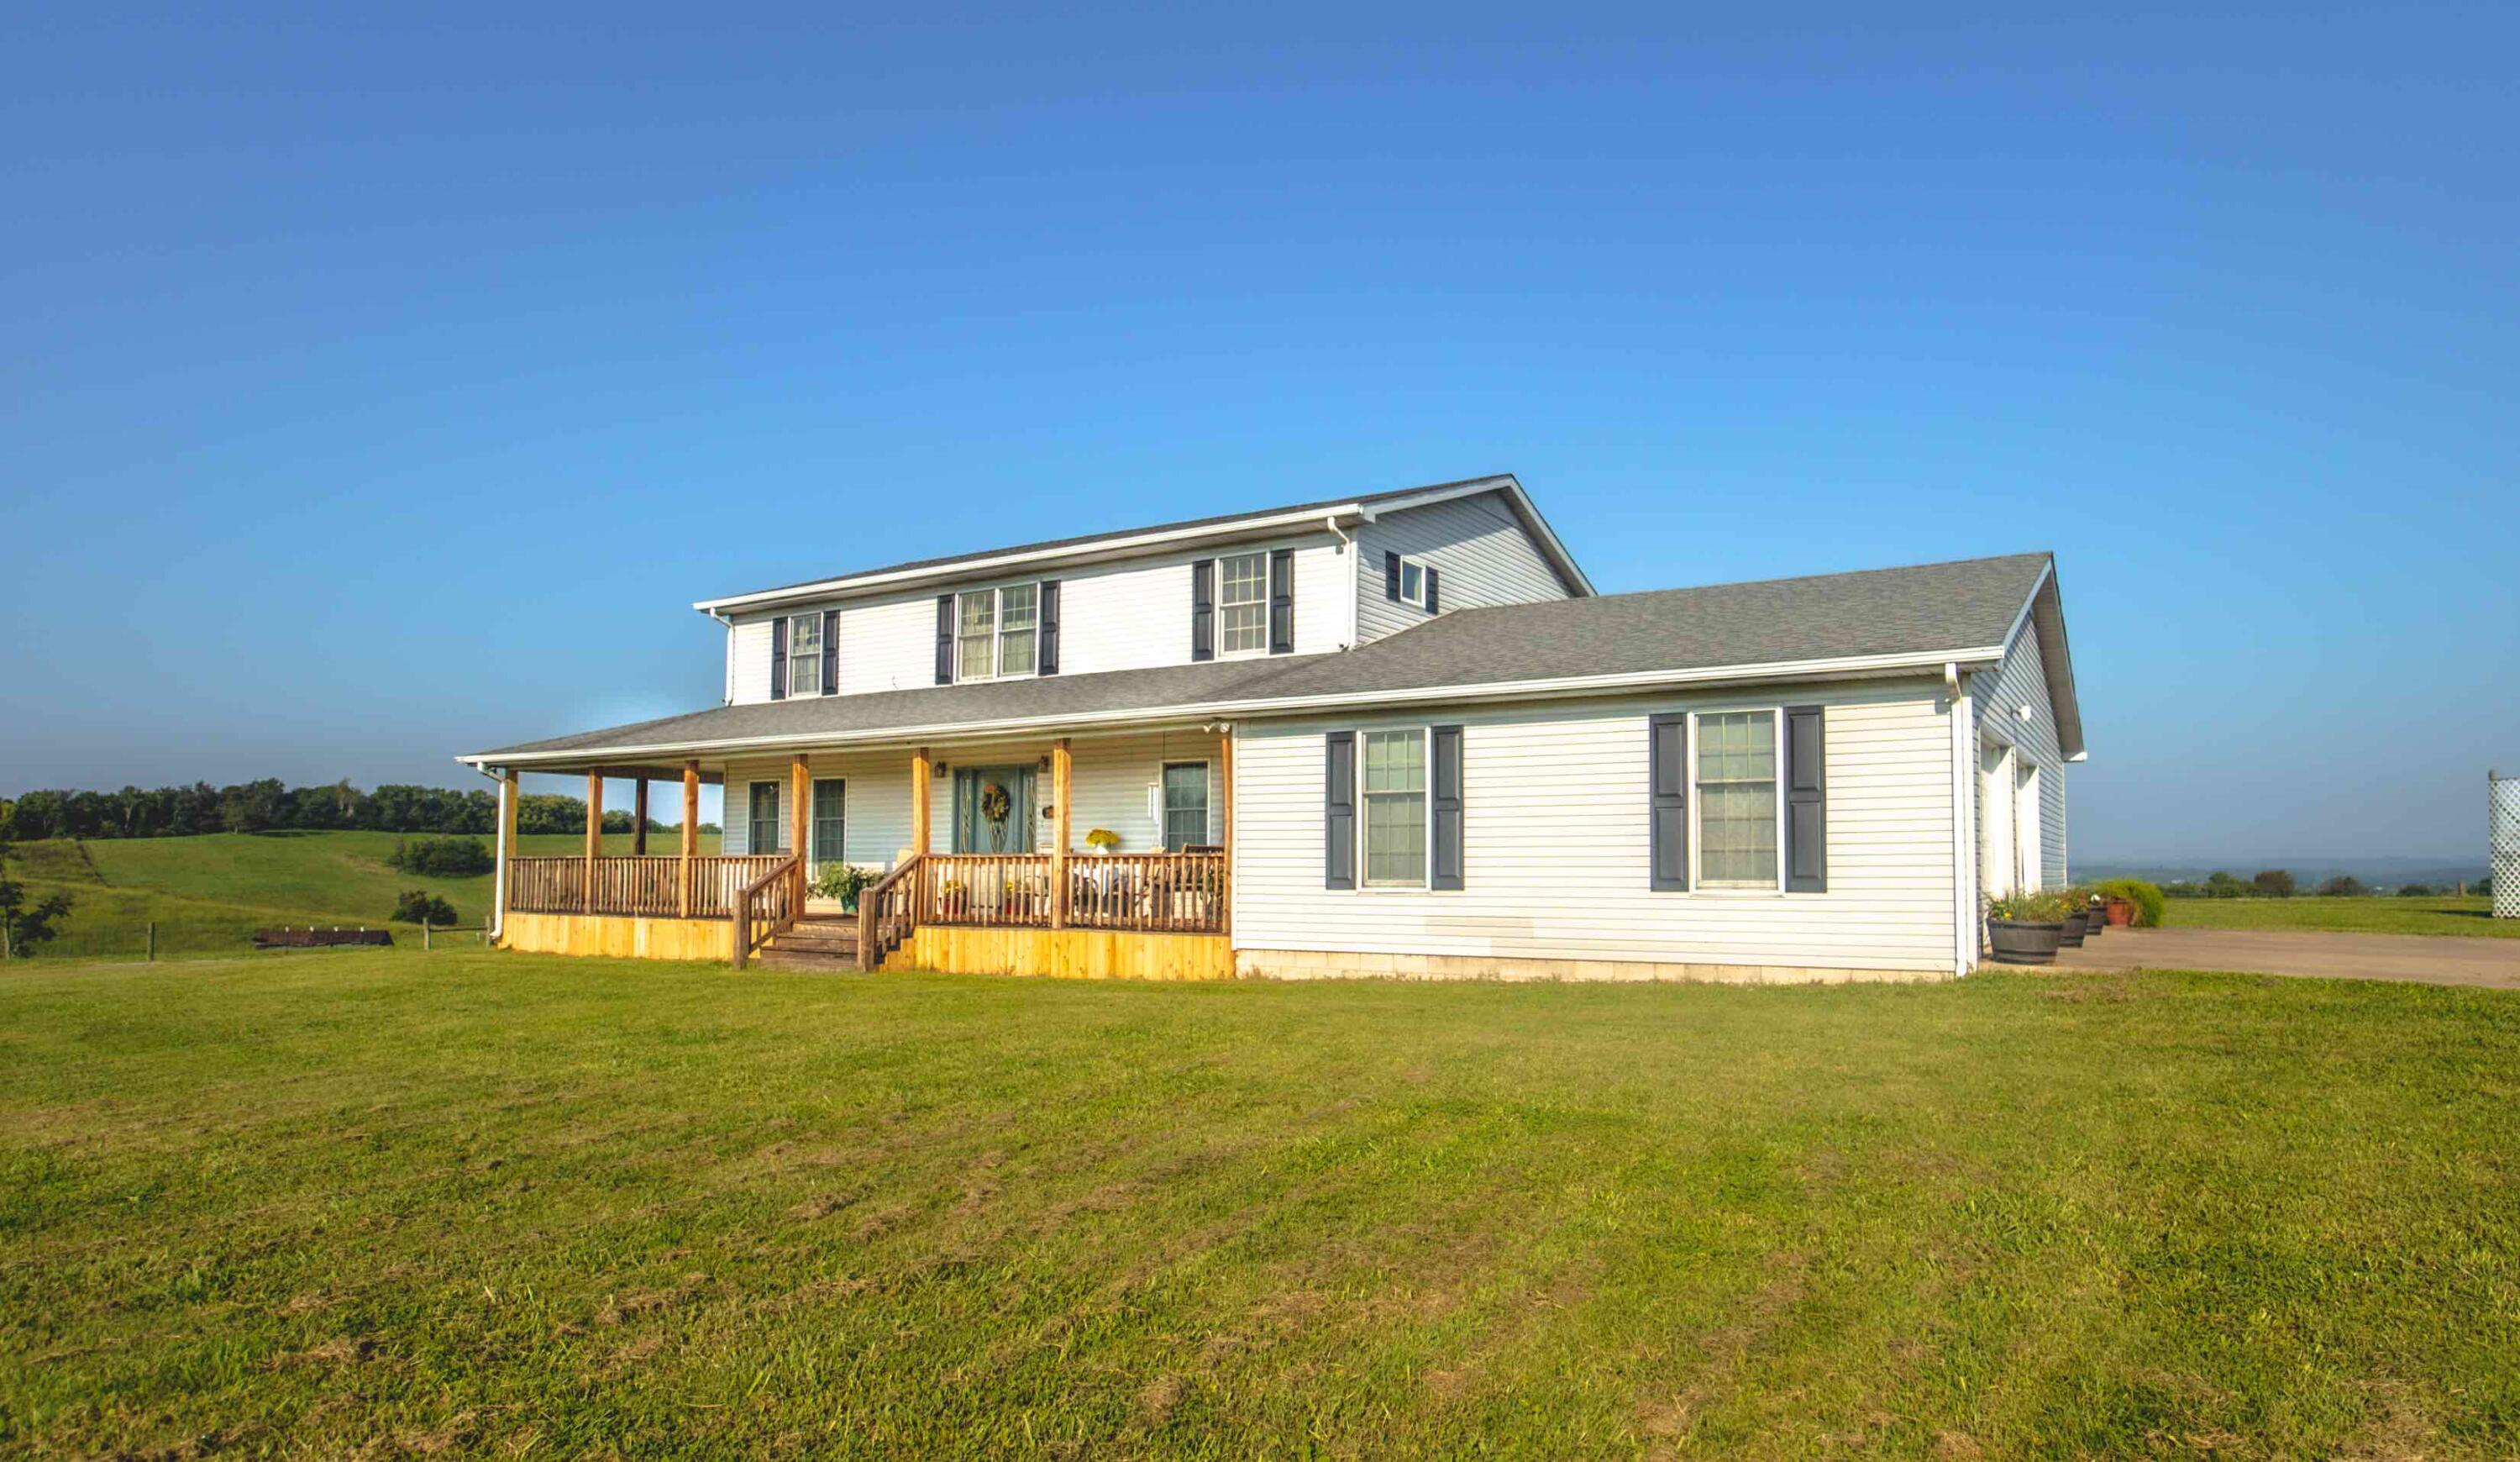 2035 Kentucky Hwy 198, Stanford, KY 40484